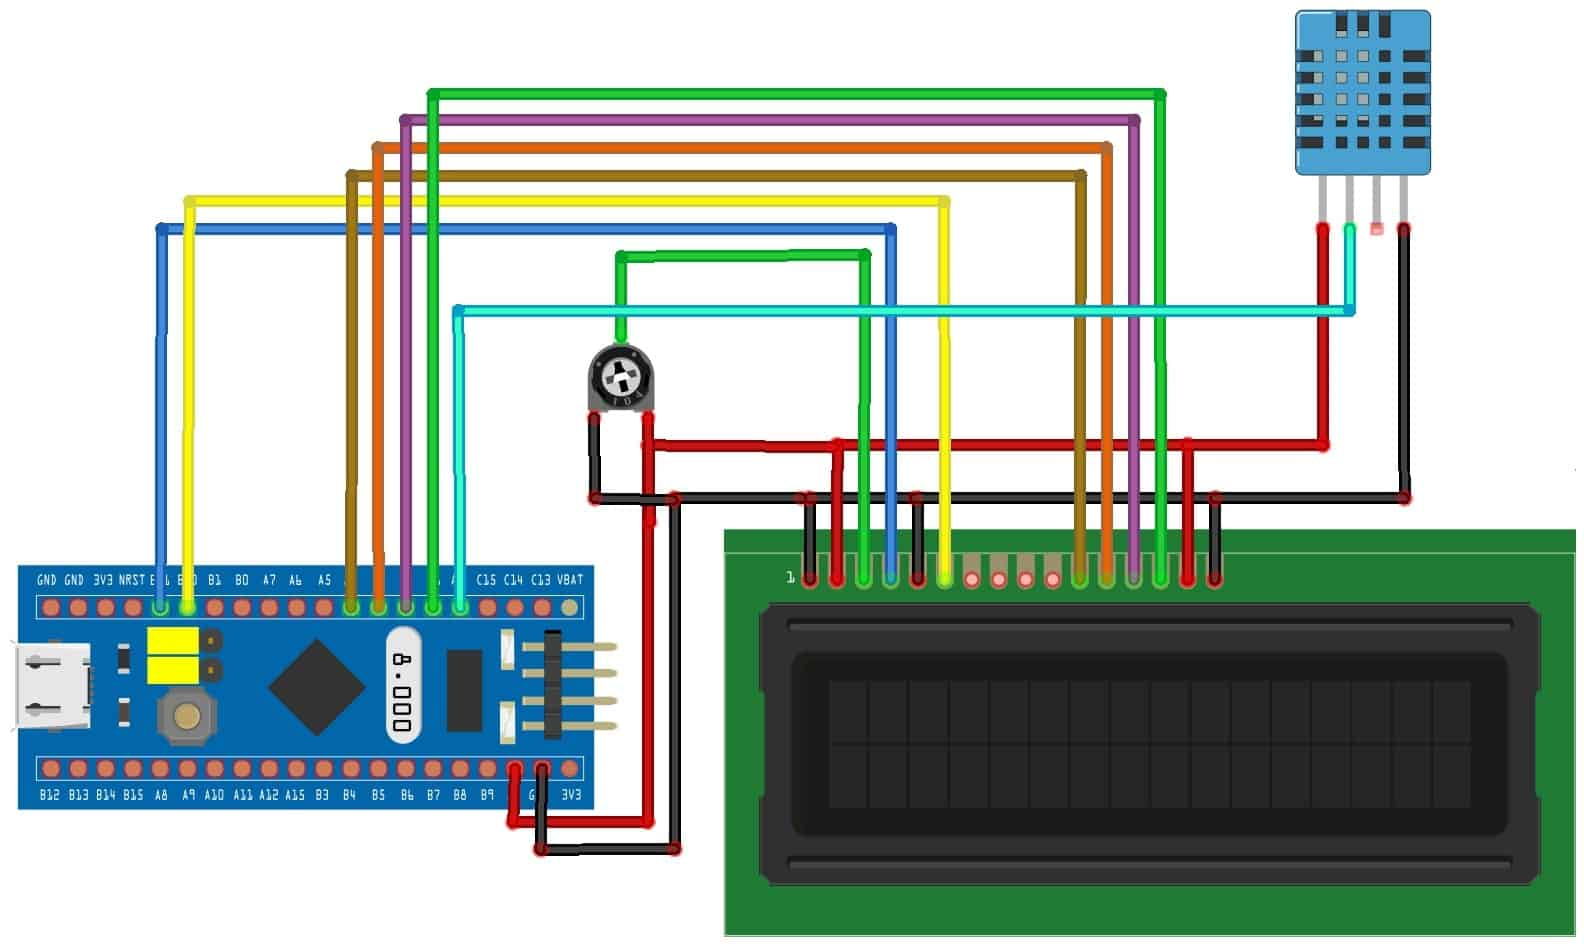 Humidity & Temperature Monitoring with DHT11 & STM32 Microcontroller